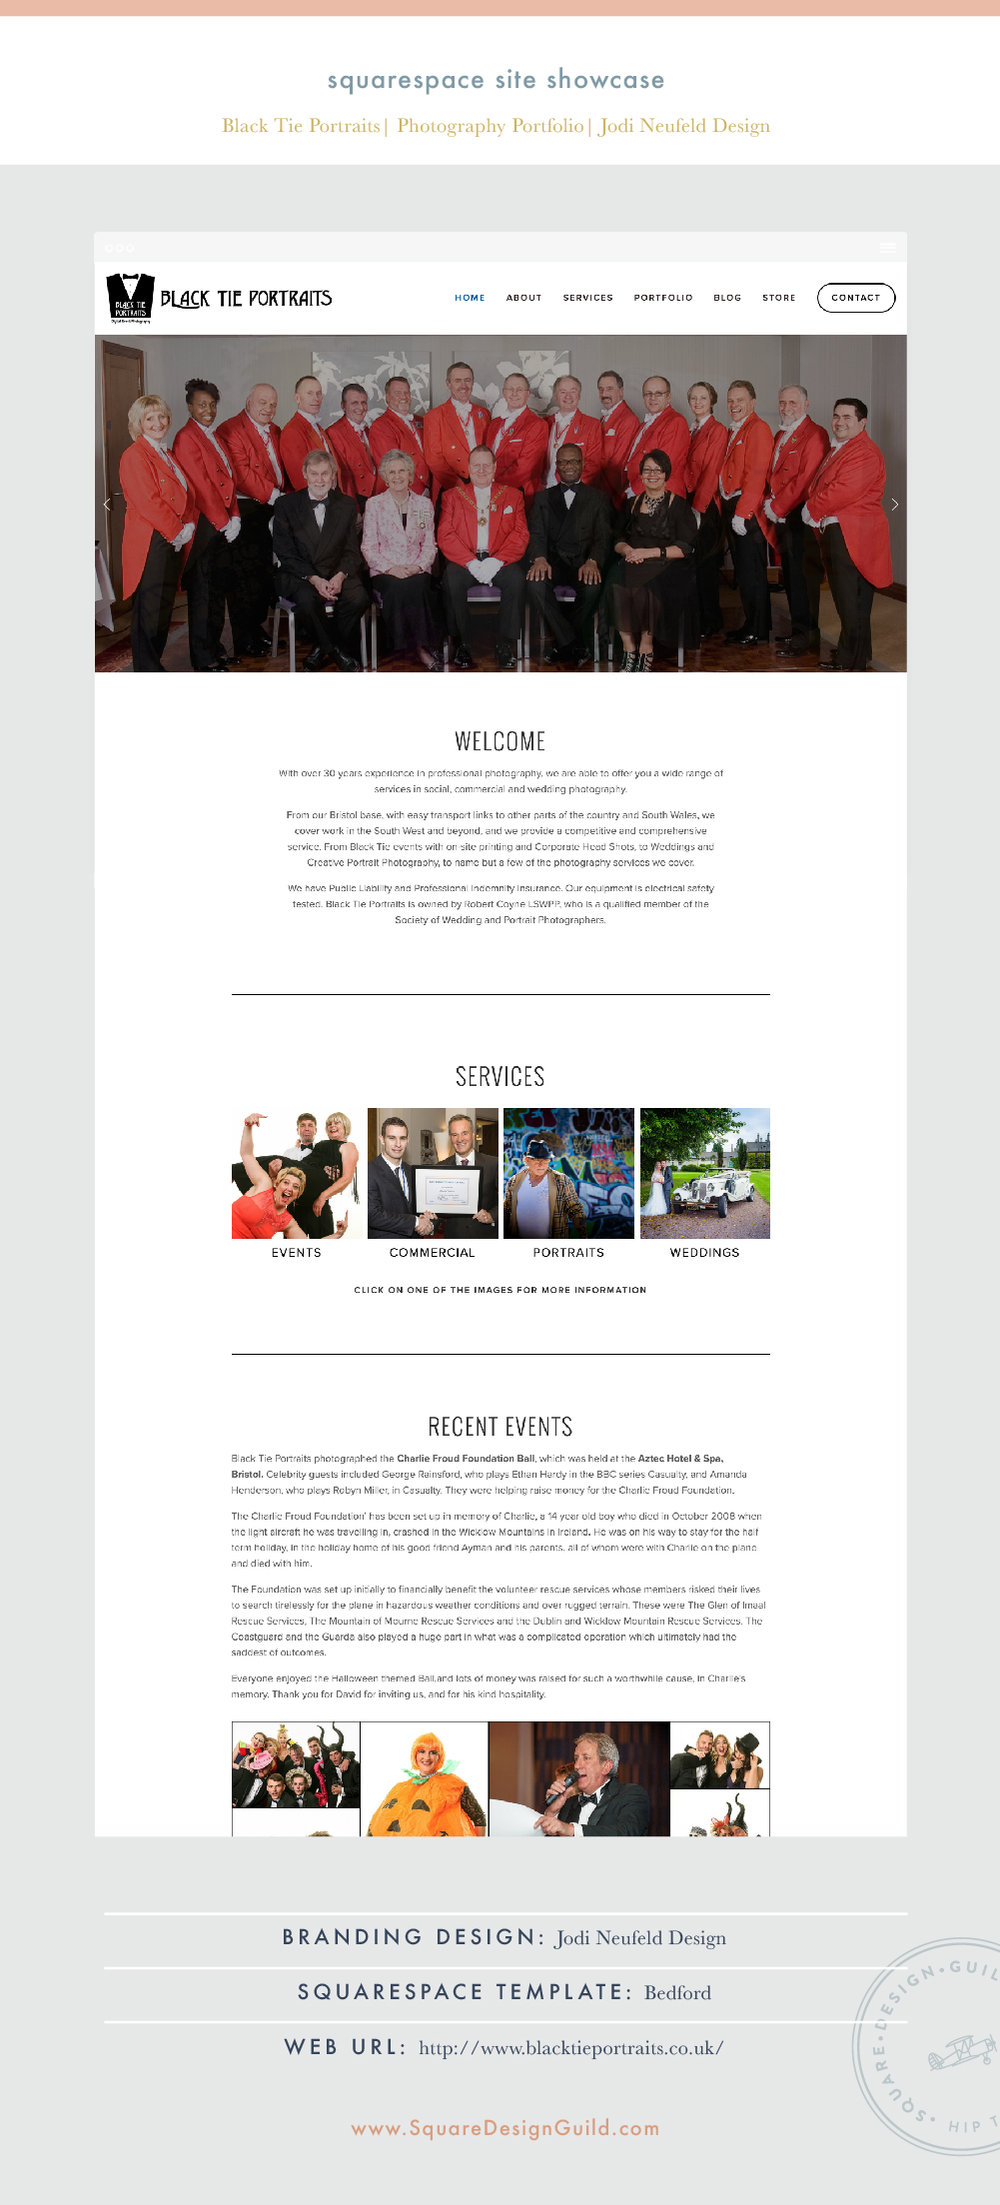 Square Design Guild | Squarespace Site Showcase | Black Tie Portraits by Jodi Neufeld | Bedford Template